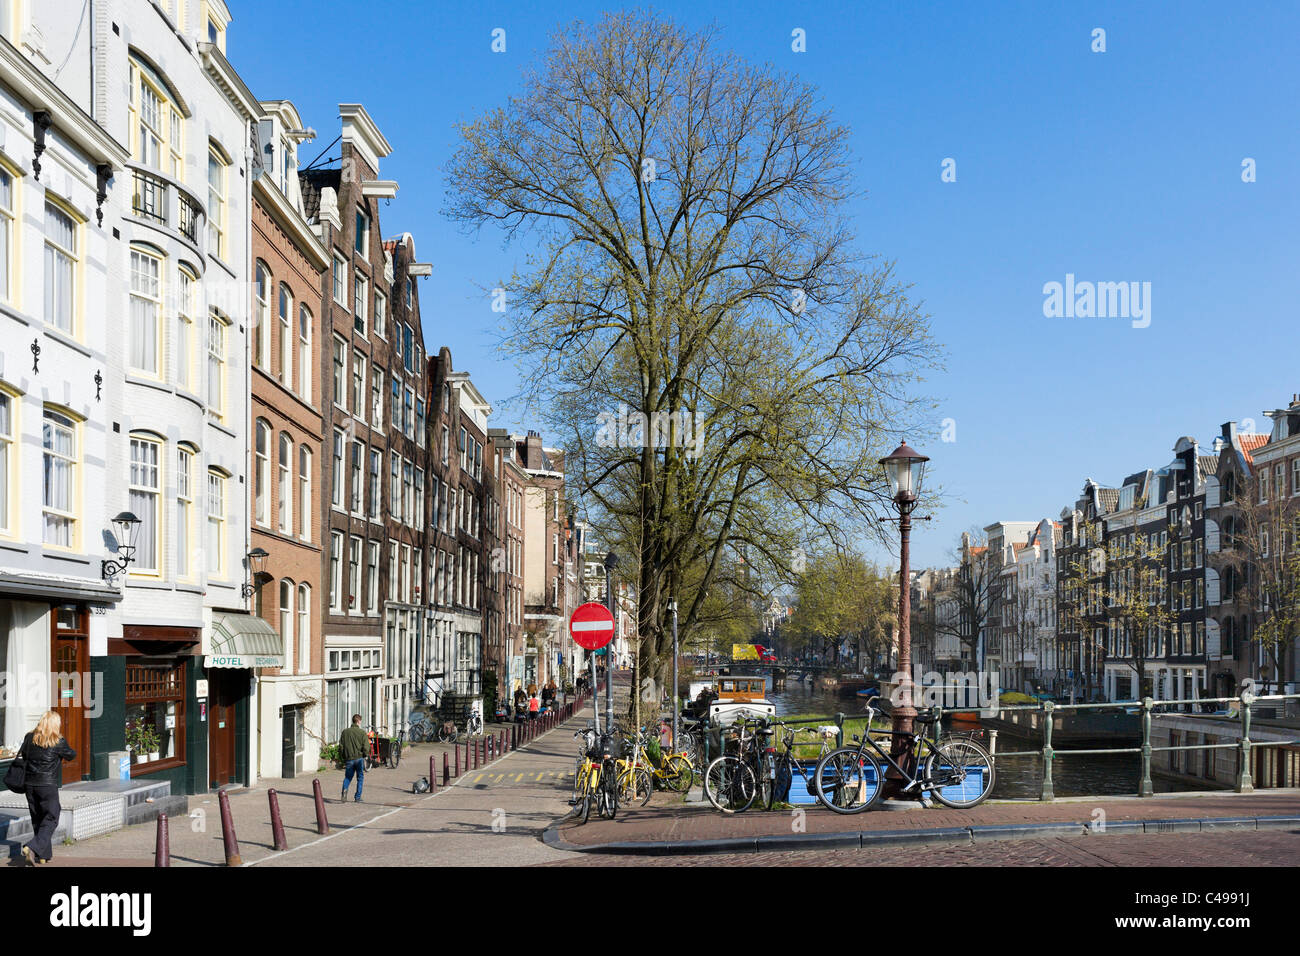 The Prinsengracht canal near the junction with Looiersgracht, Grachtengordel, Amsterdam, Netherlands - Stock Image